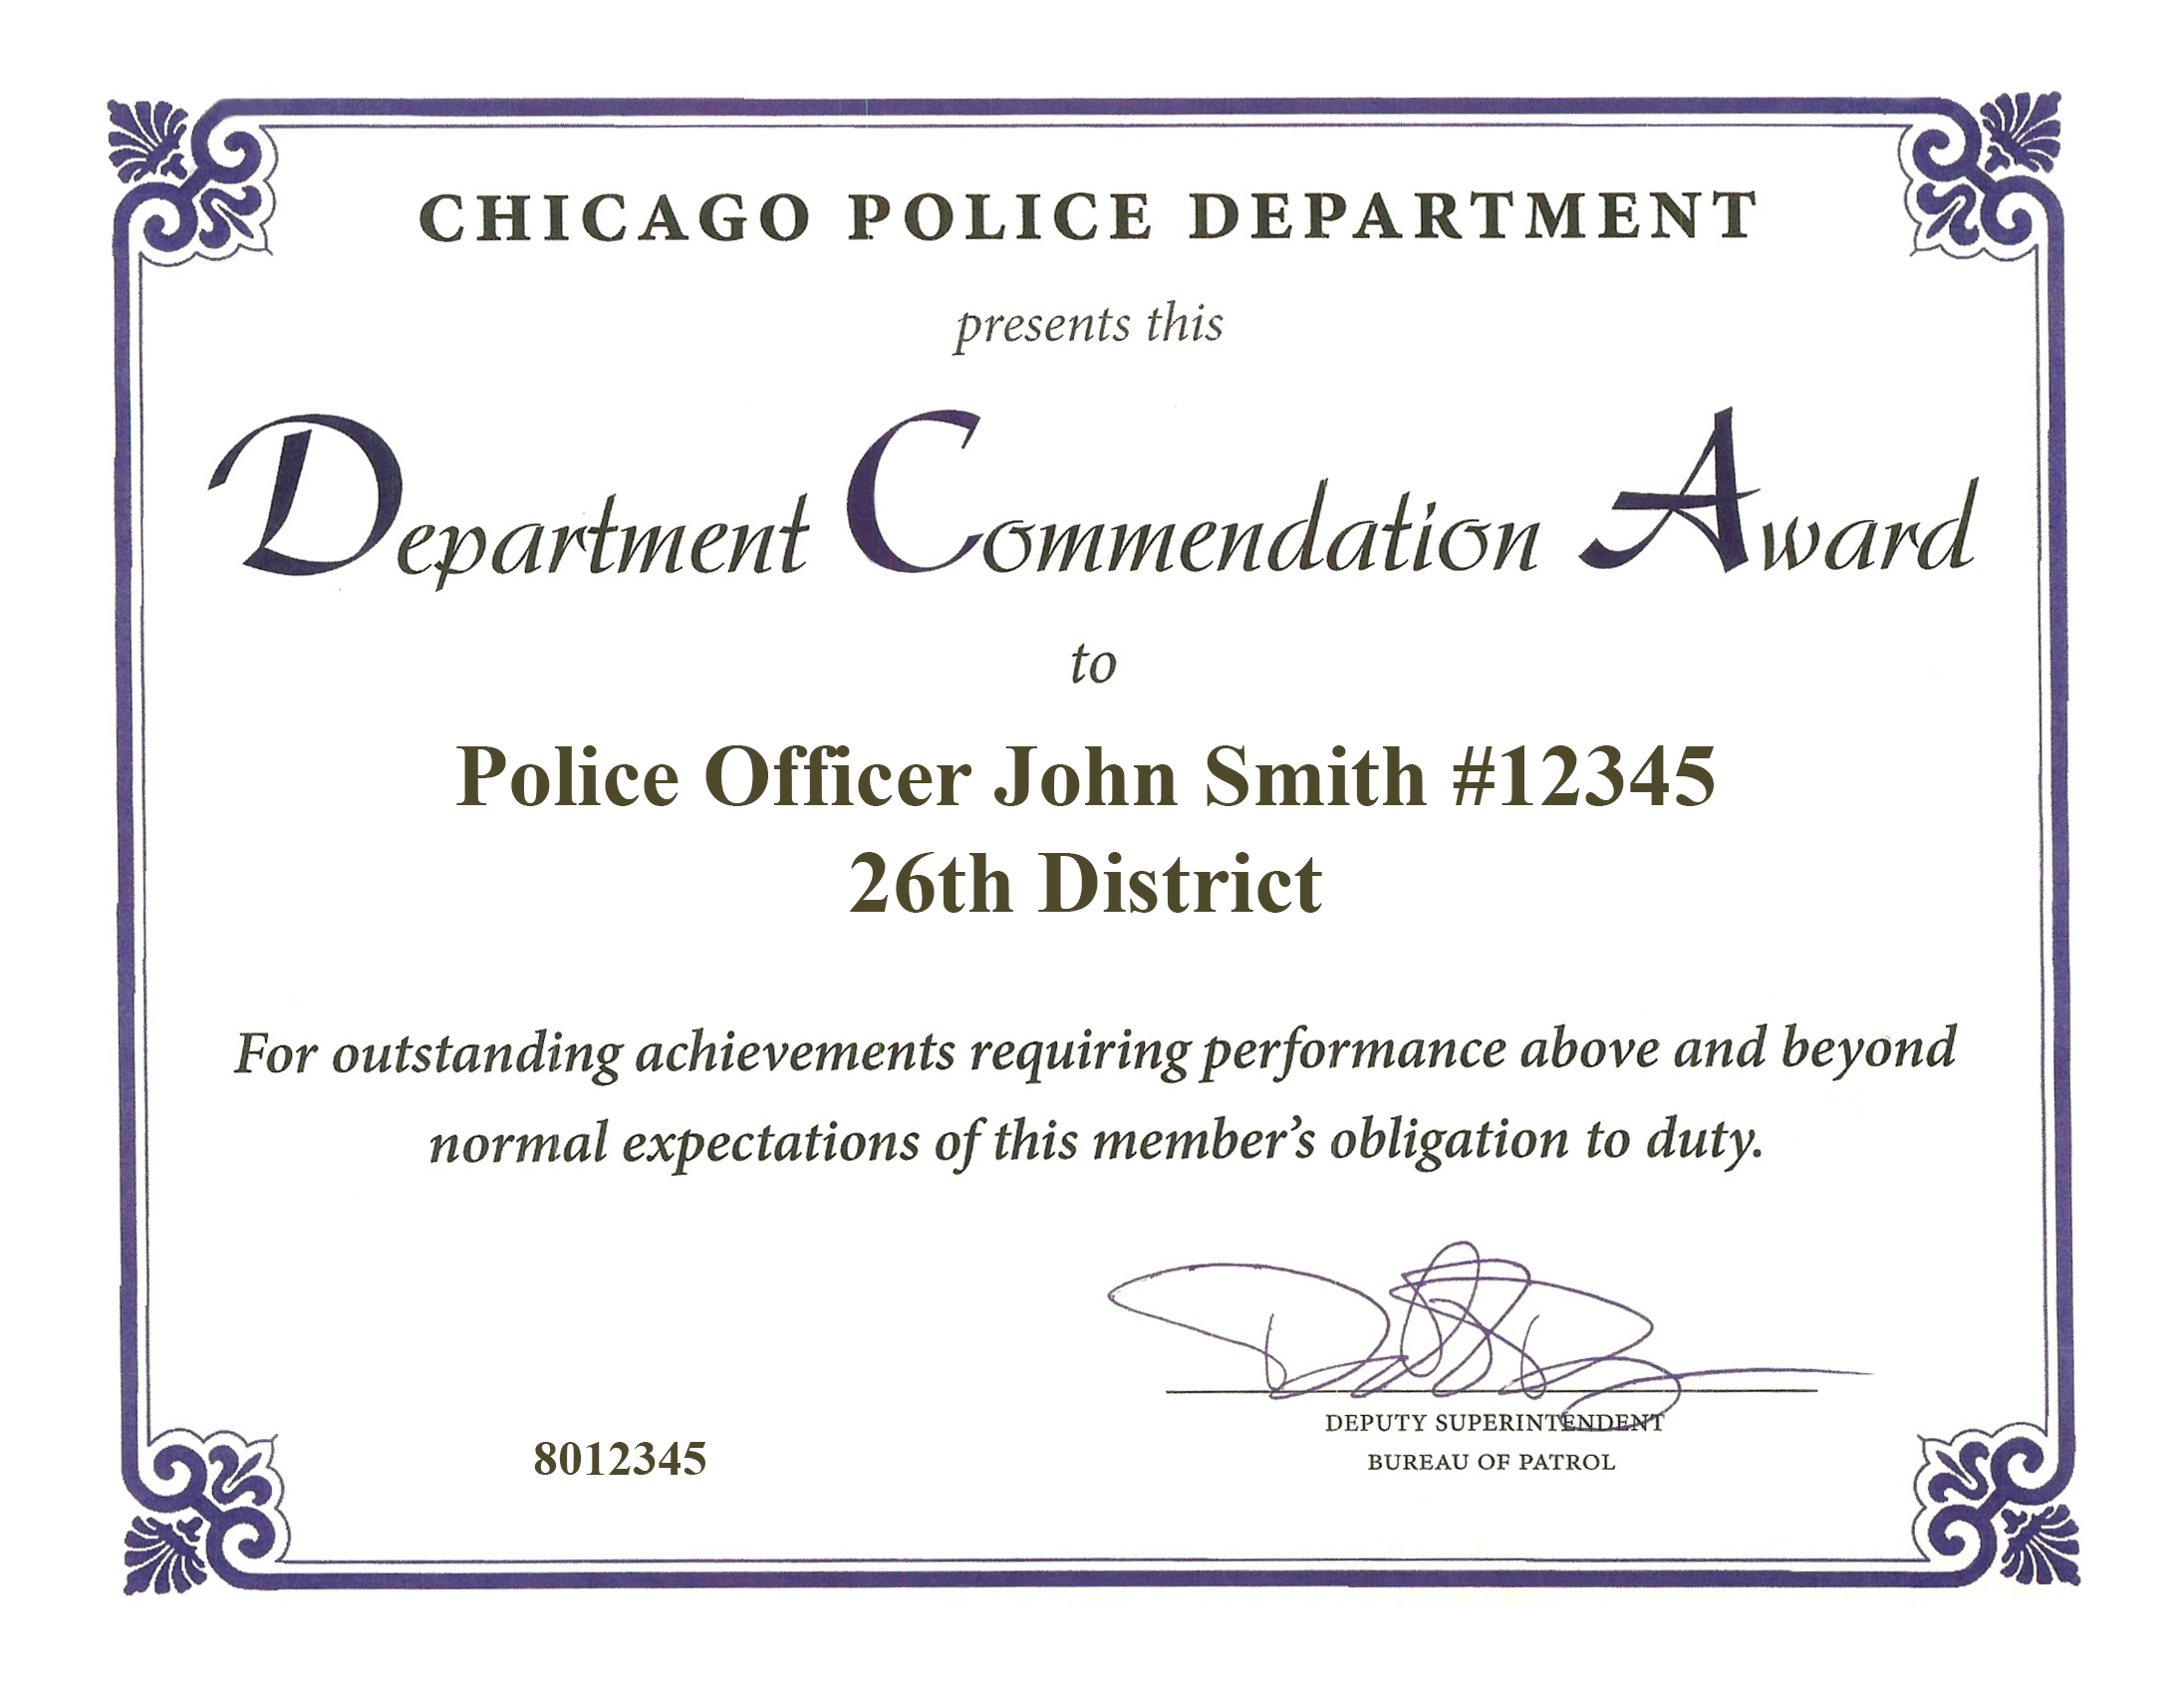 Department Commendation Award Certificate